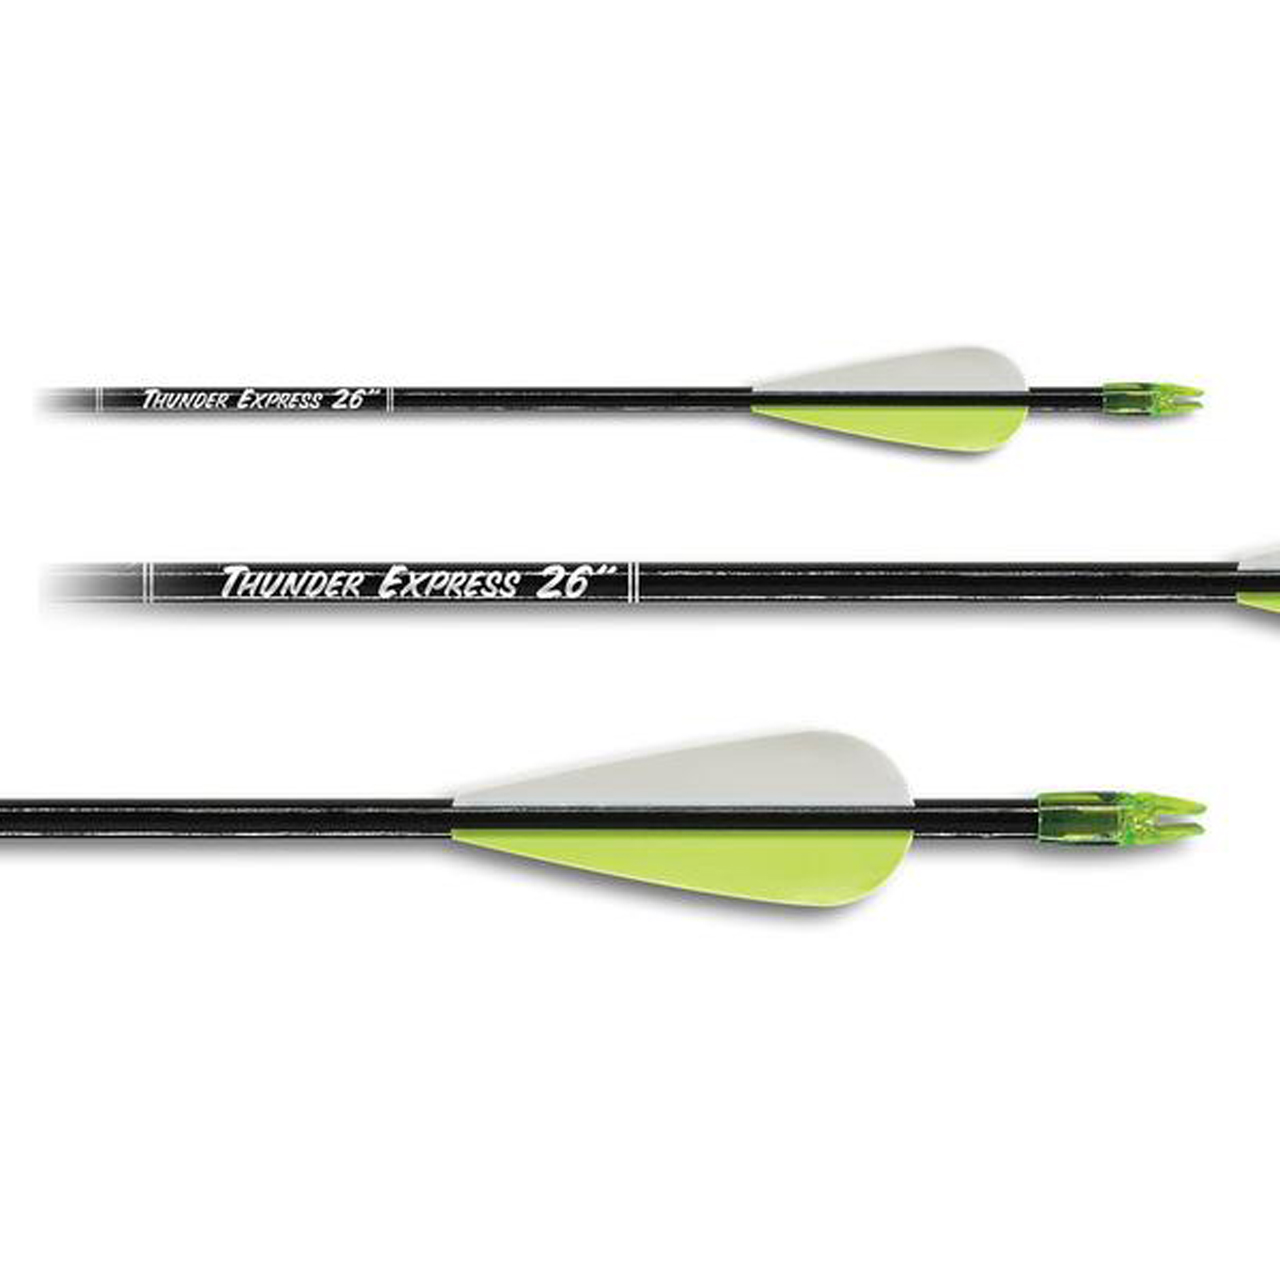 5 Pack Carbon Express Thunder Express Wood Arrows 27 in